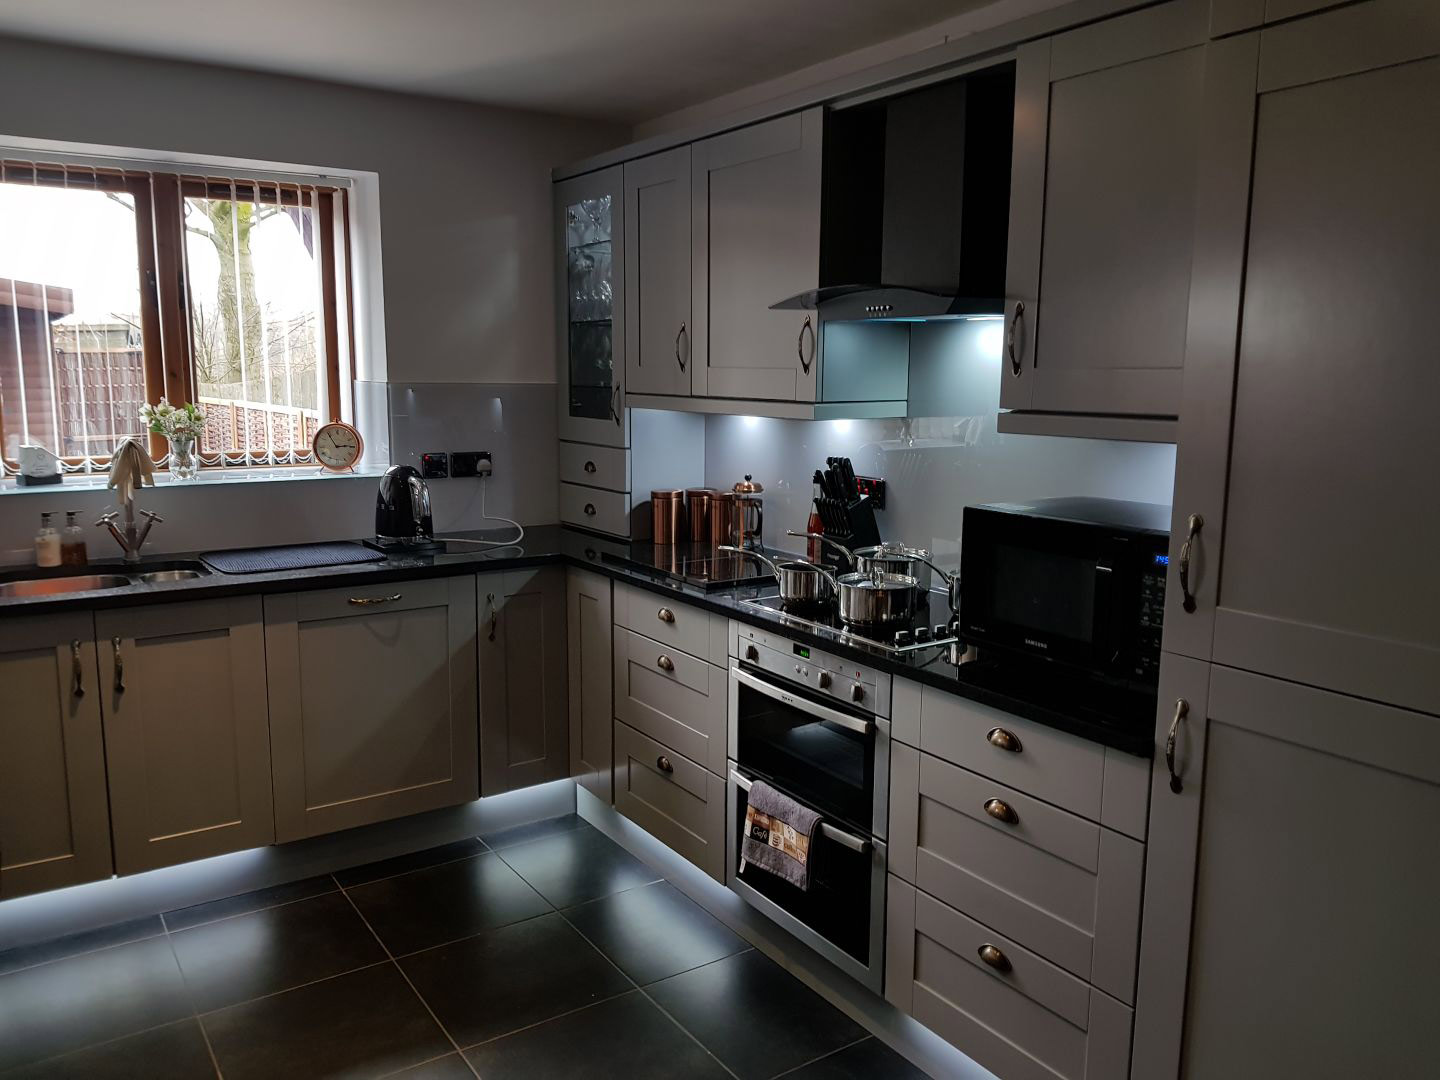 Kitchen Respray And Furniture Resoration In Birmingham West Midlands